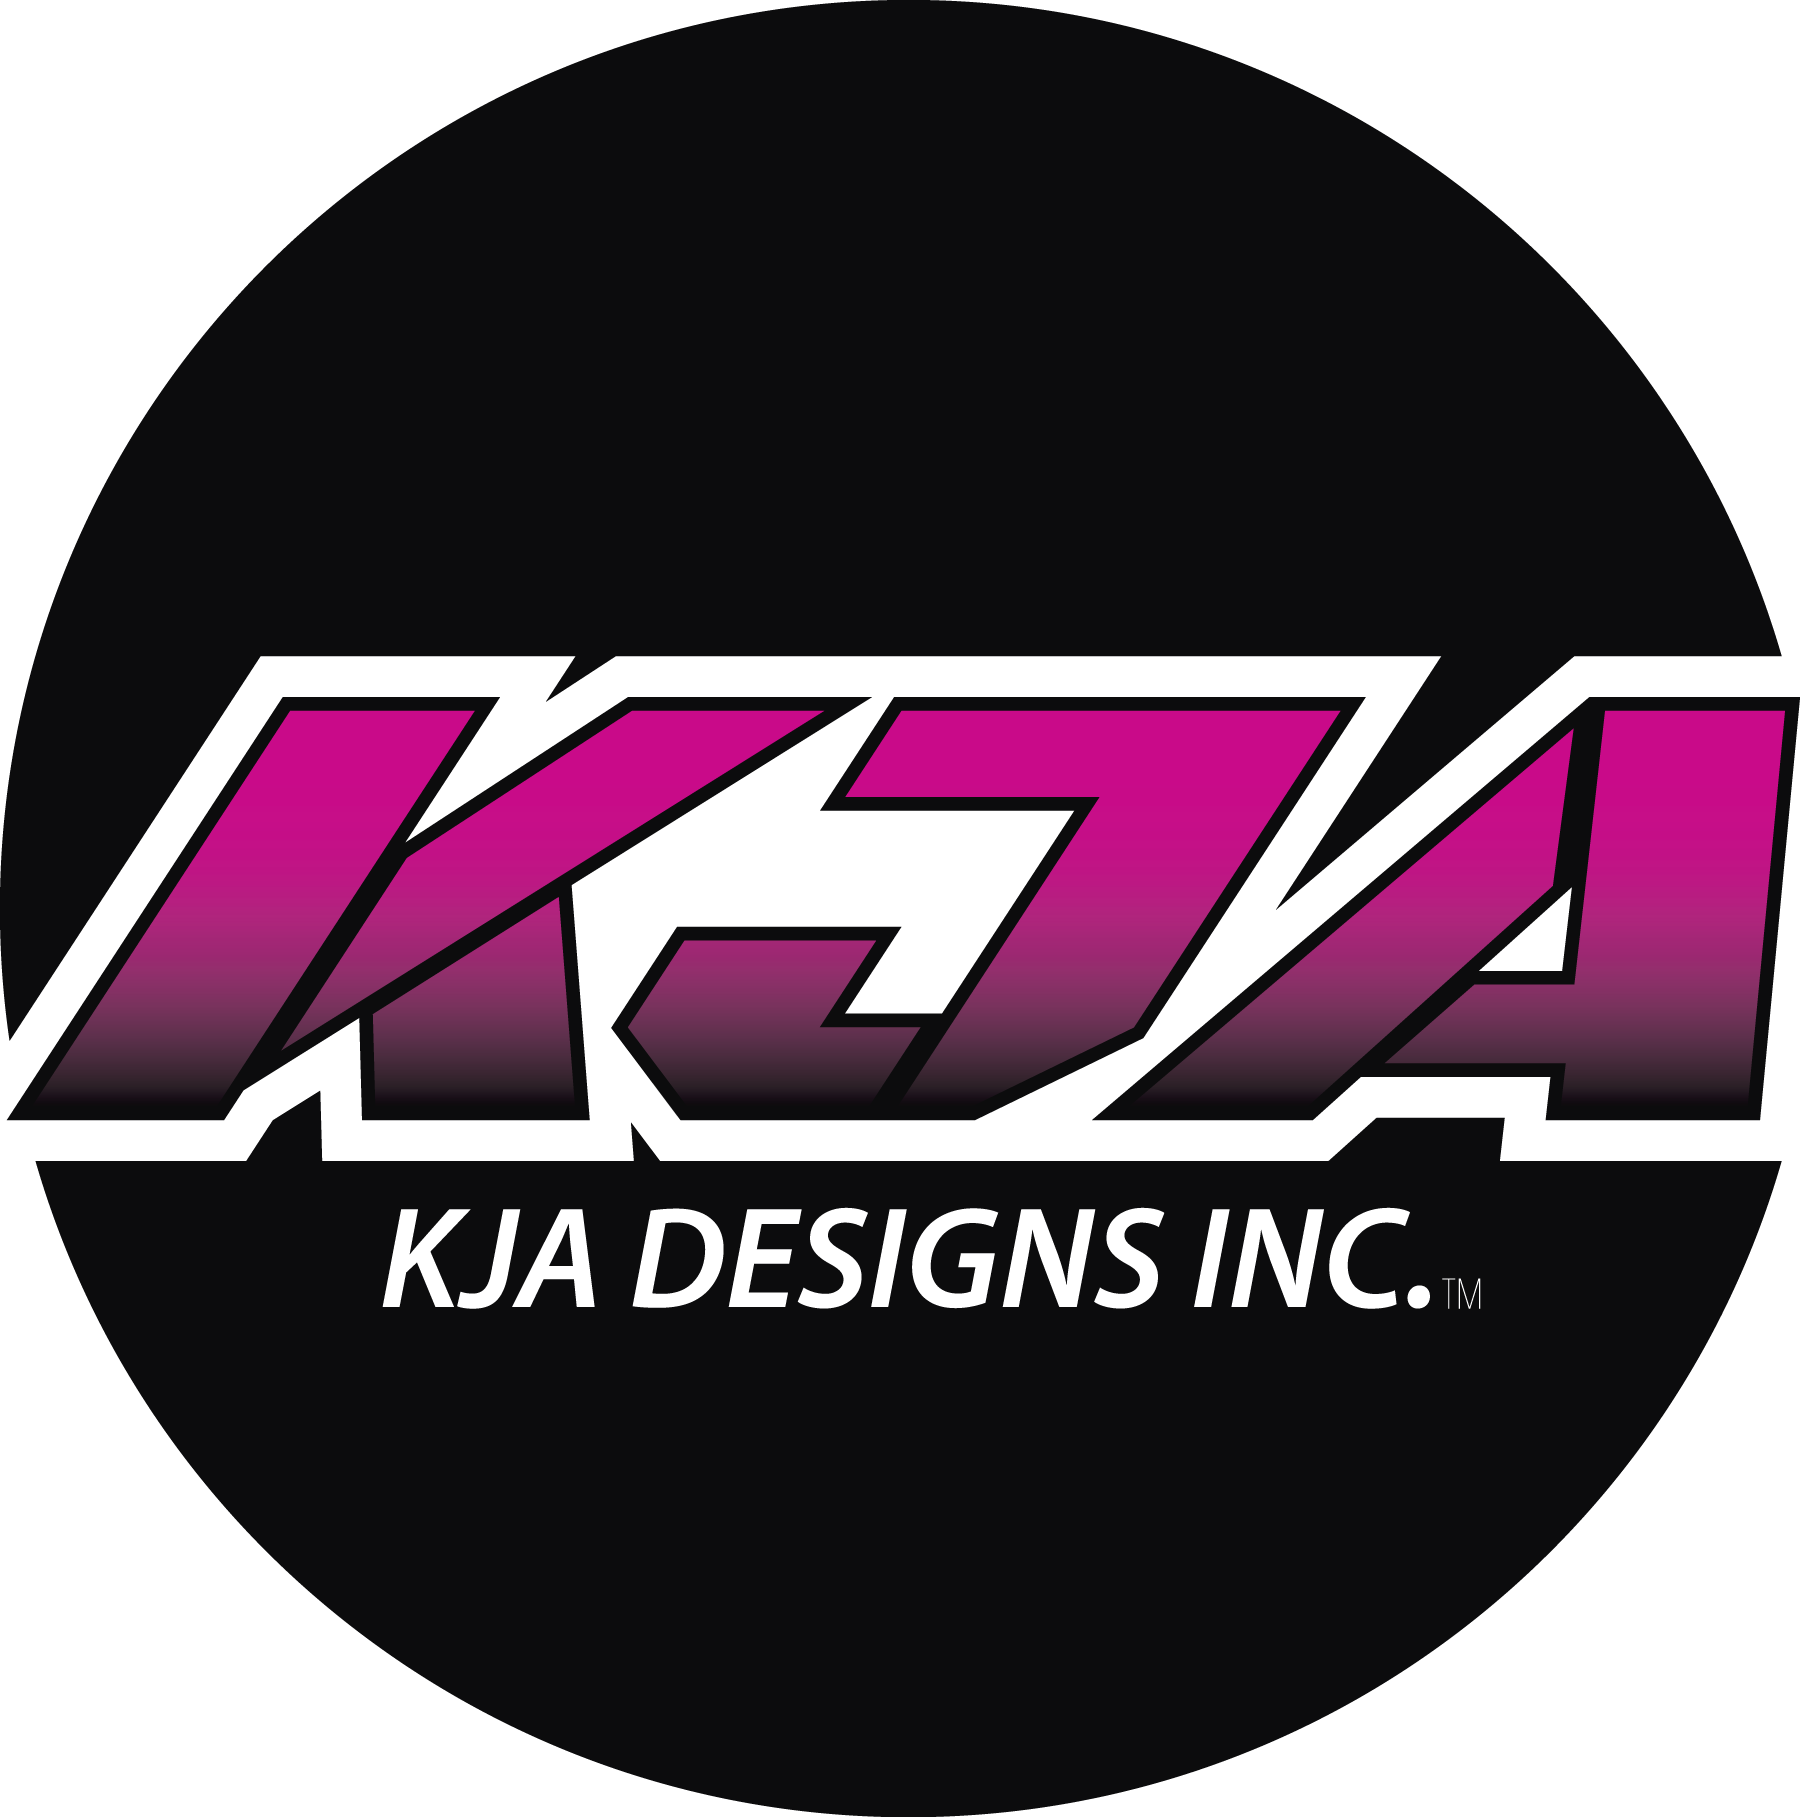 KJA Designs Inc.™ 4A on site